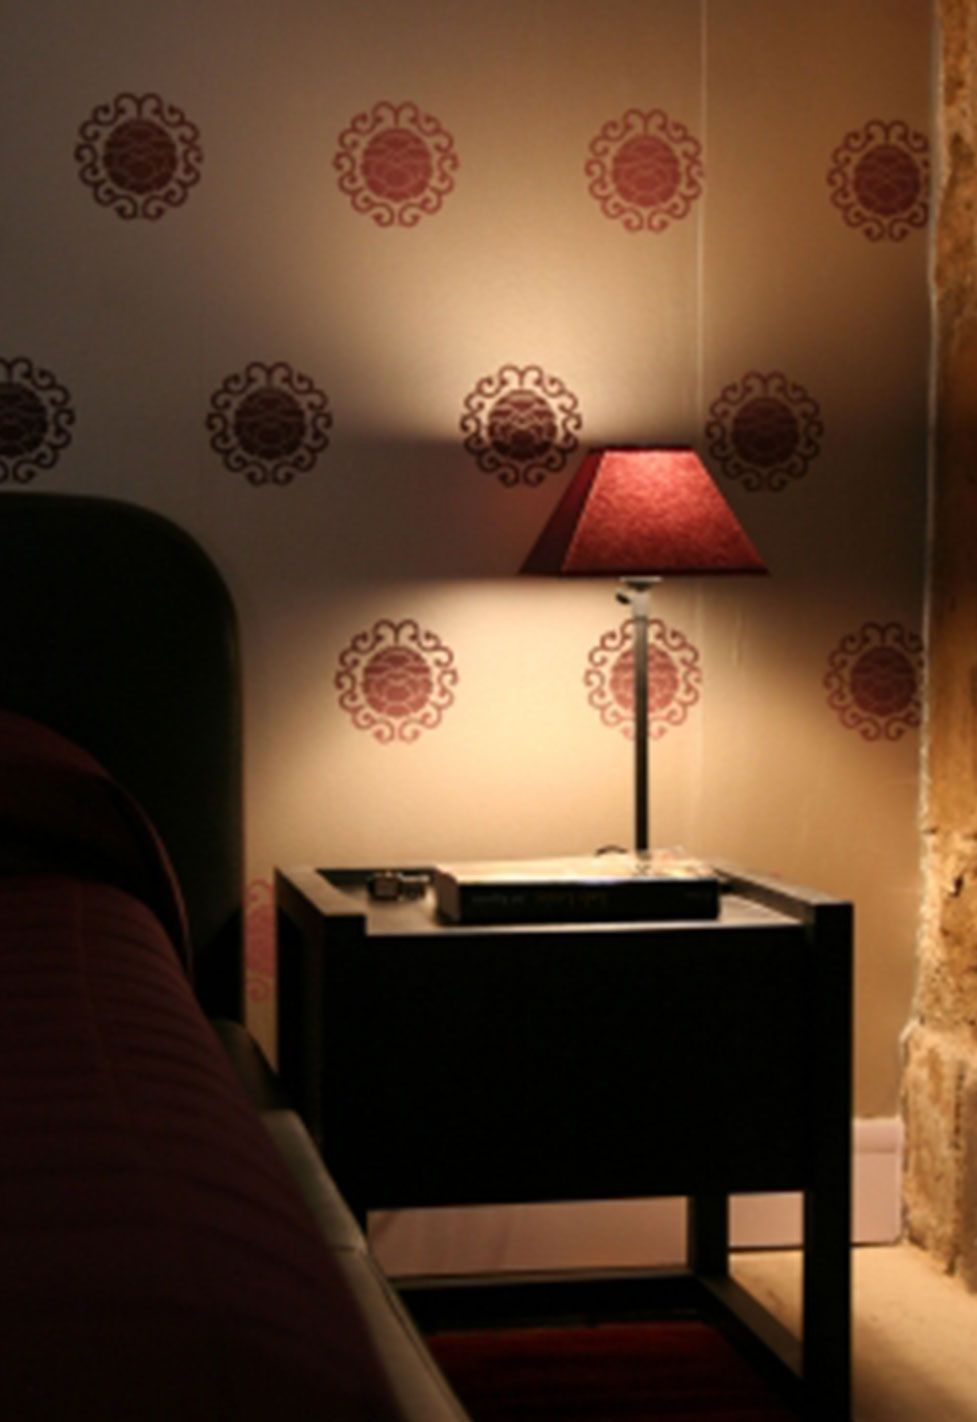 Chambre d 39 h tel paris 6 me alfa design for Hotel design paris 6